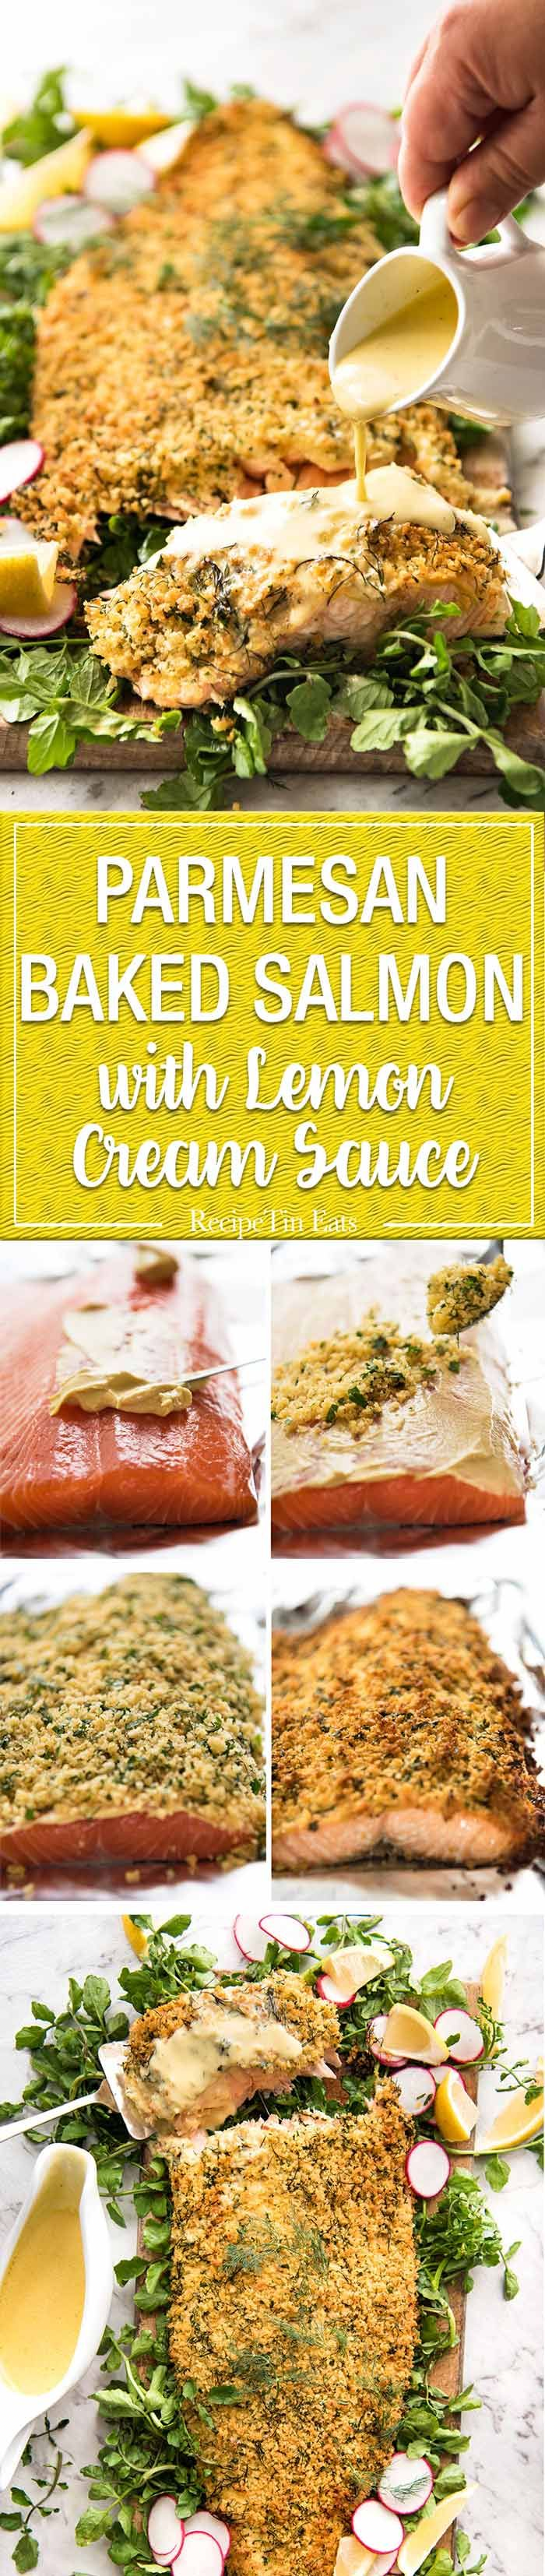 Baked Parmesan Crusted Salmon with Lemon Cream Sauce – easy and fast to make, can